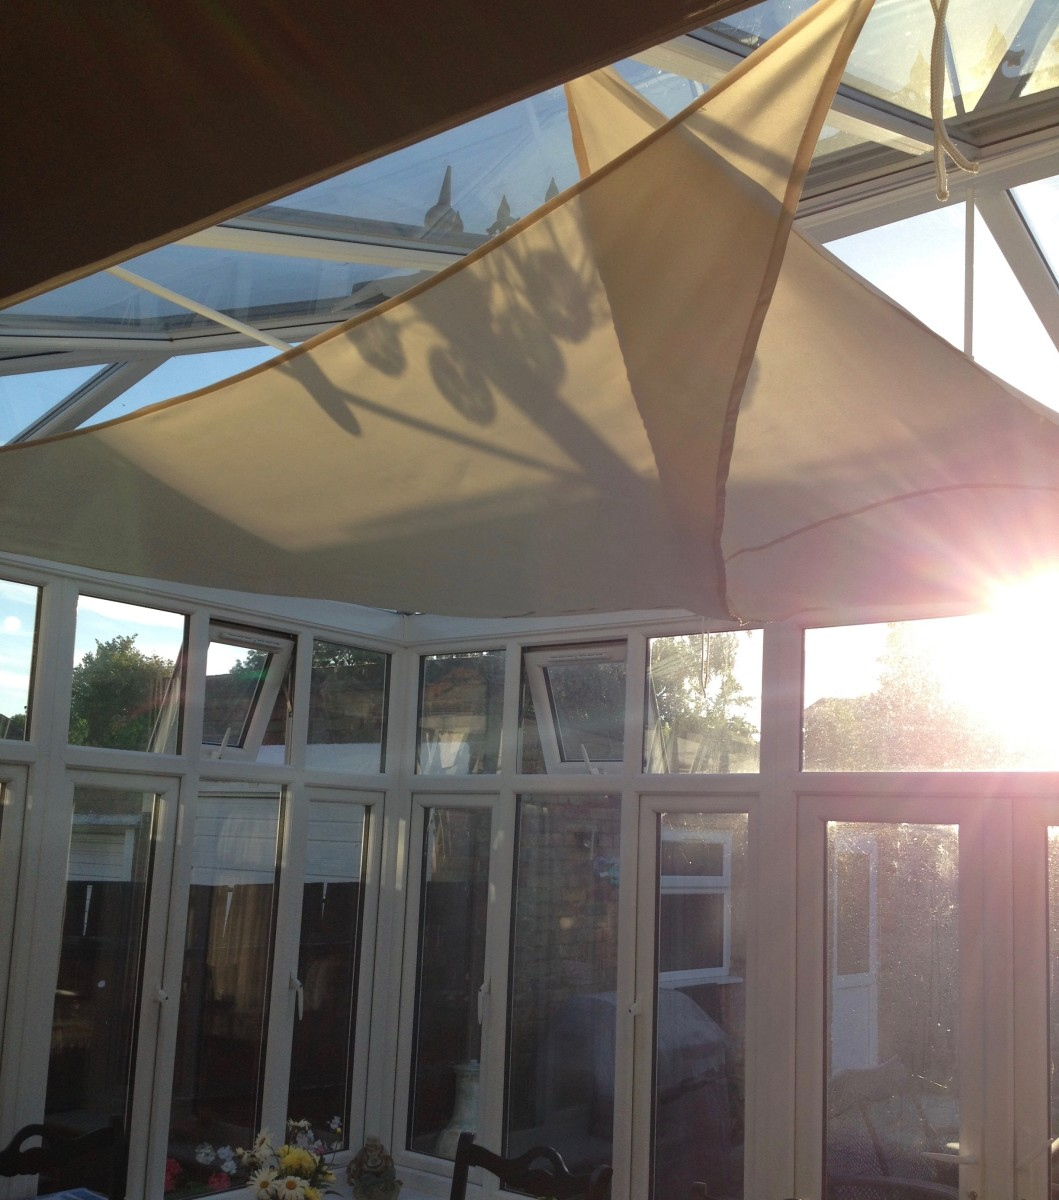 How to Create Shade in a Hot Conservatory Using Shade Sails